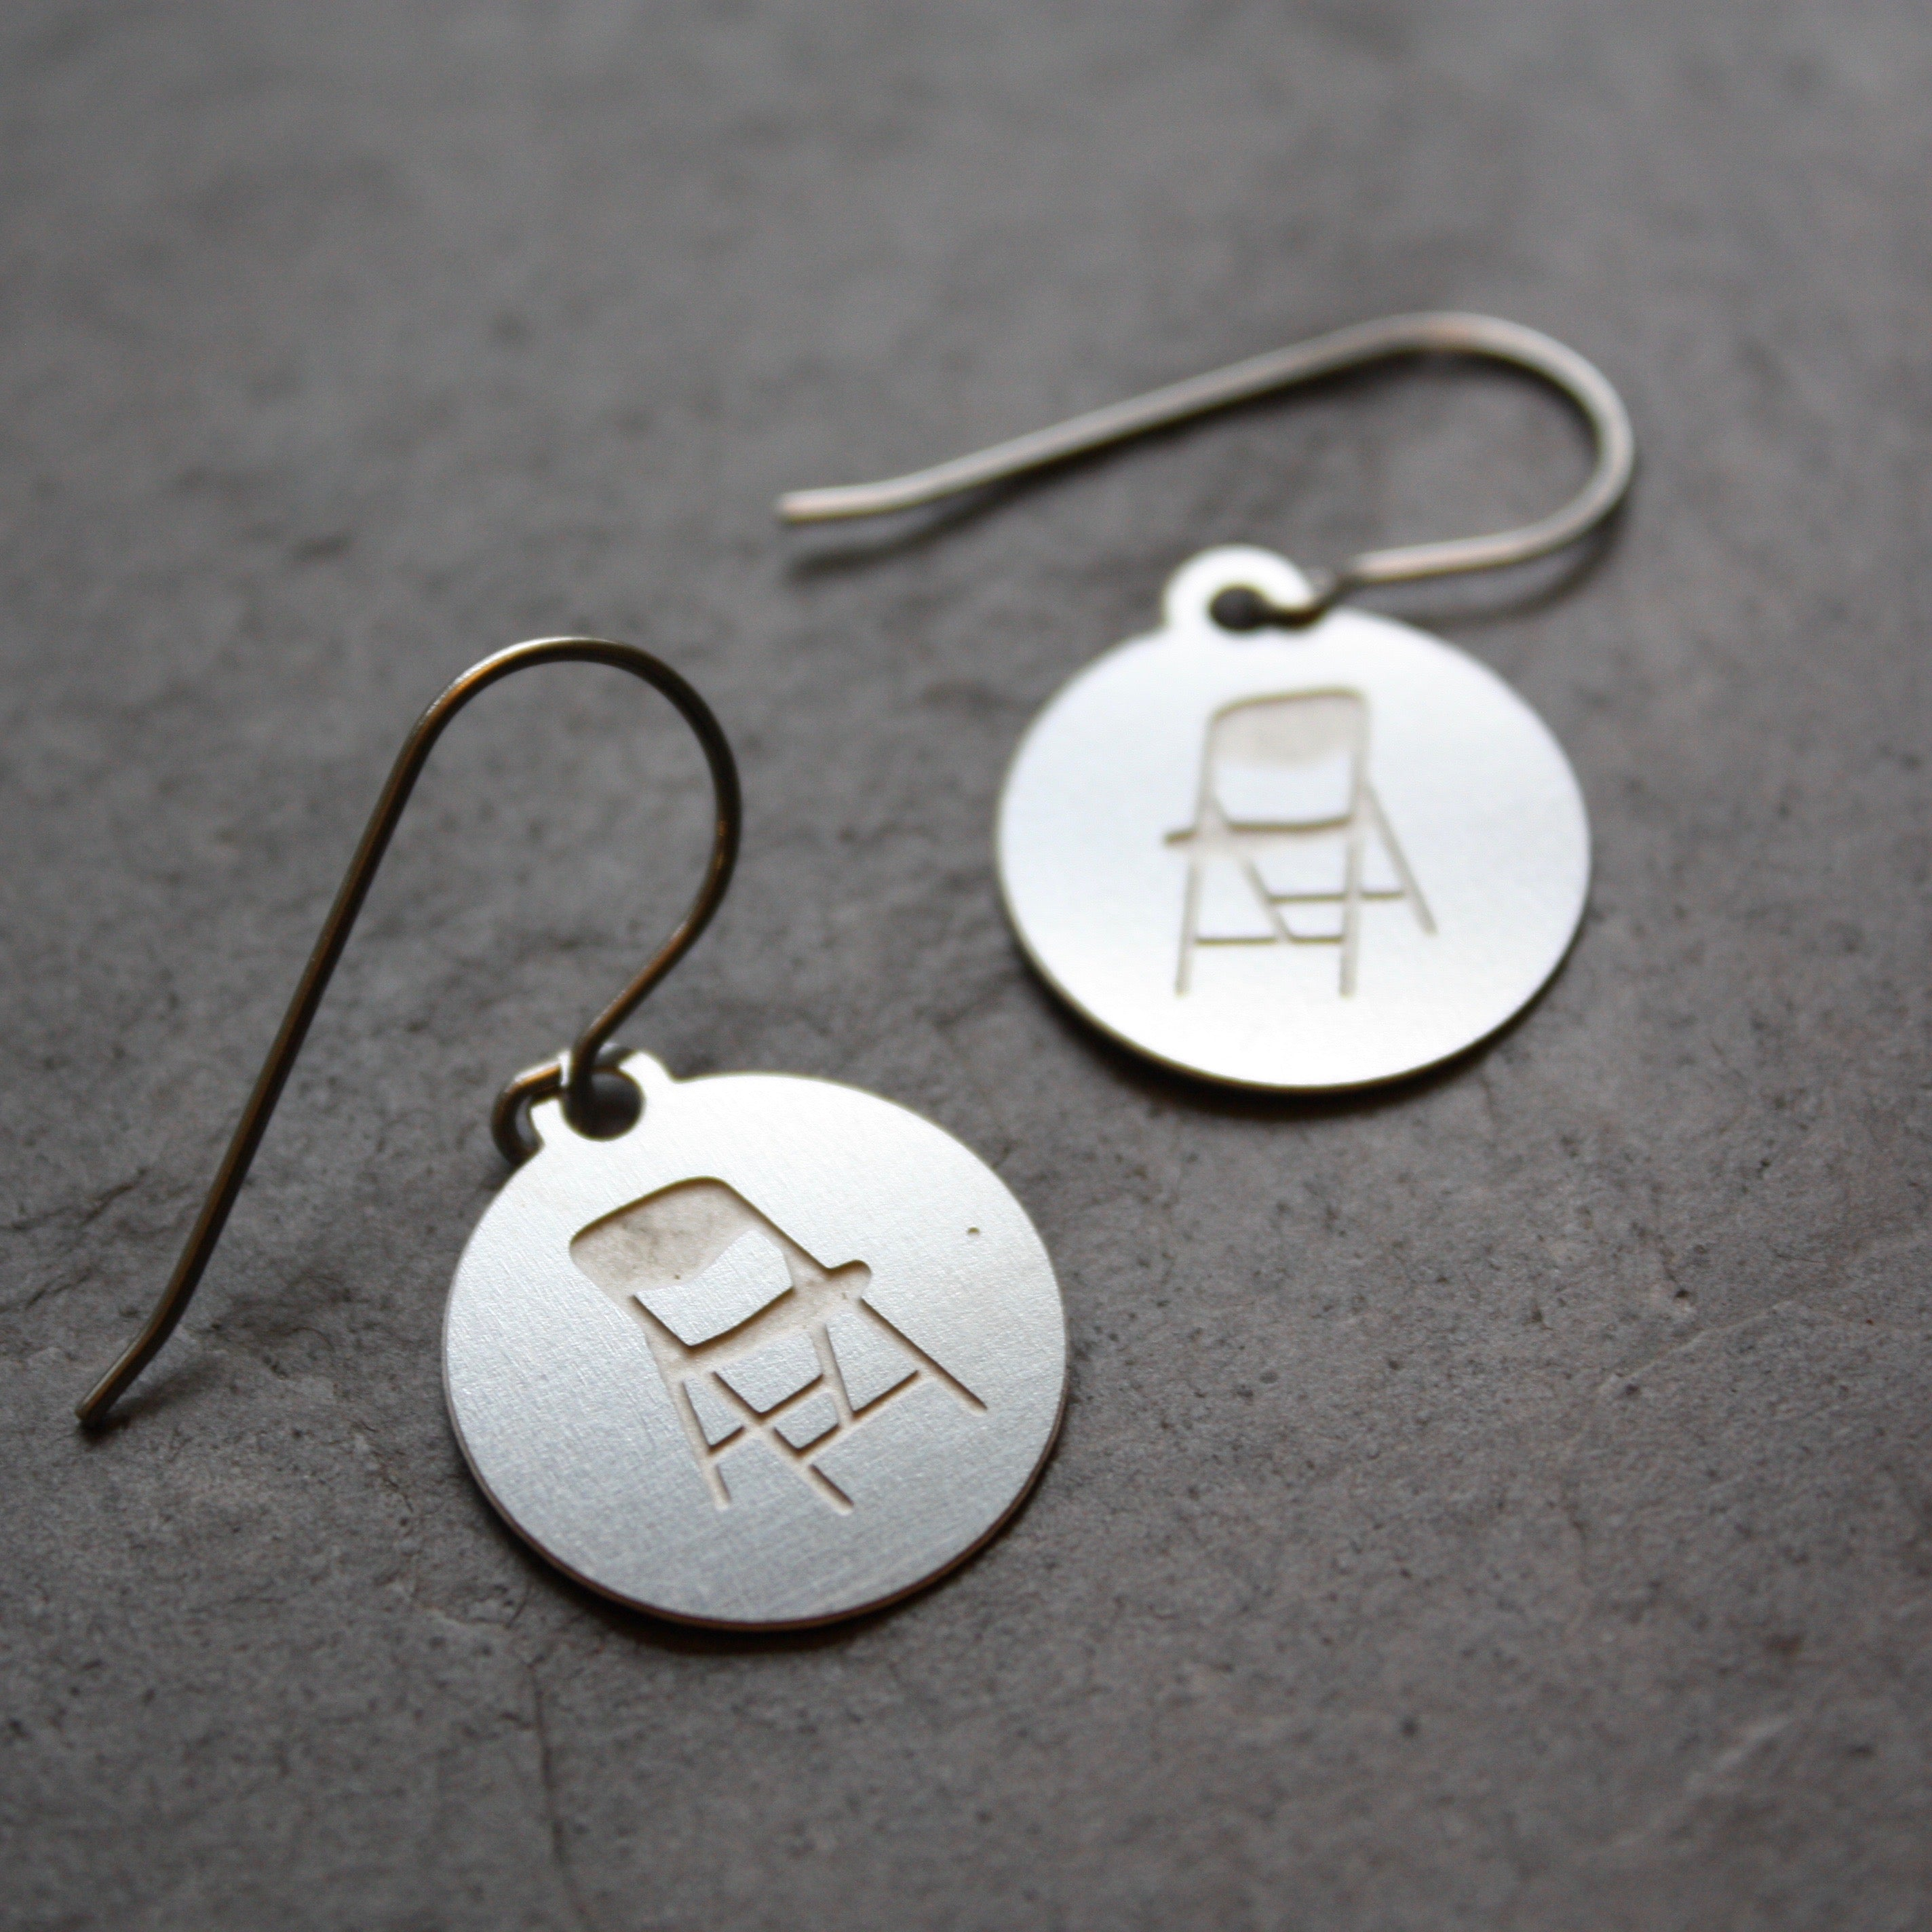 Mini-Parking chair  earrings